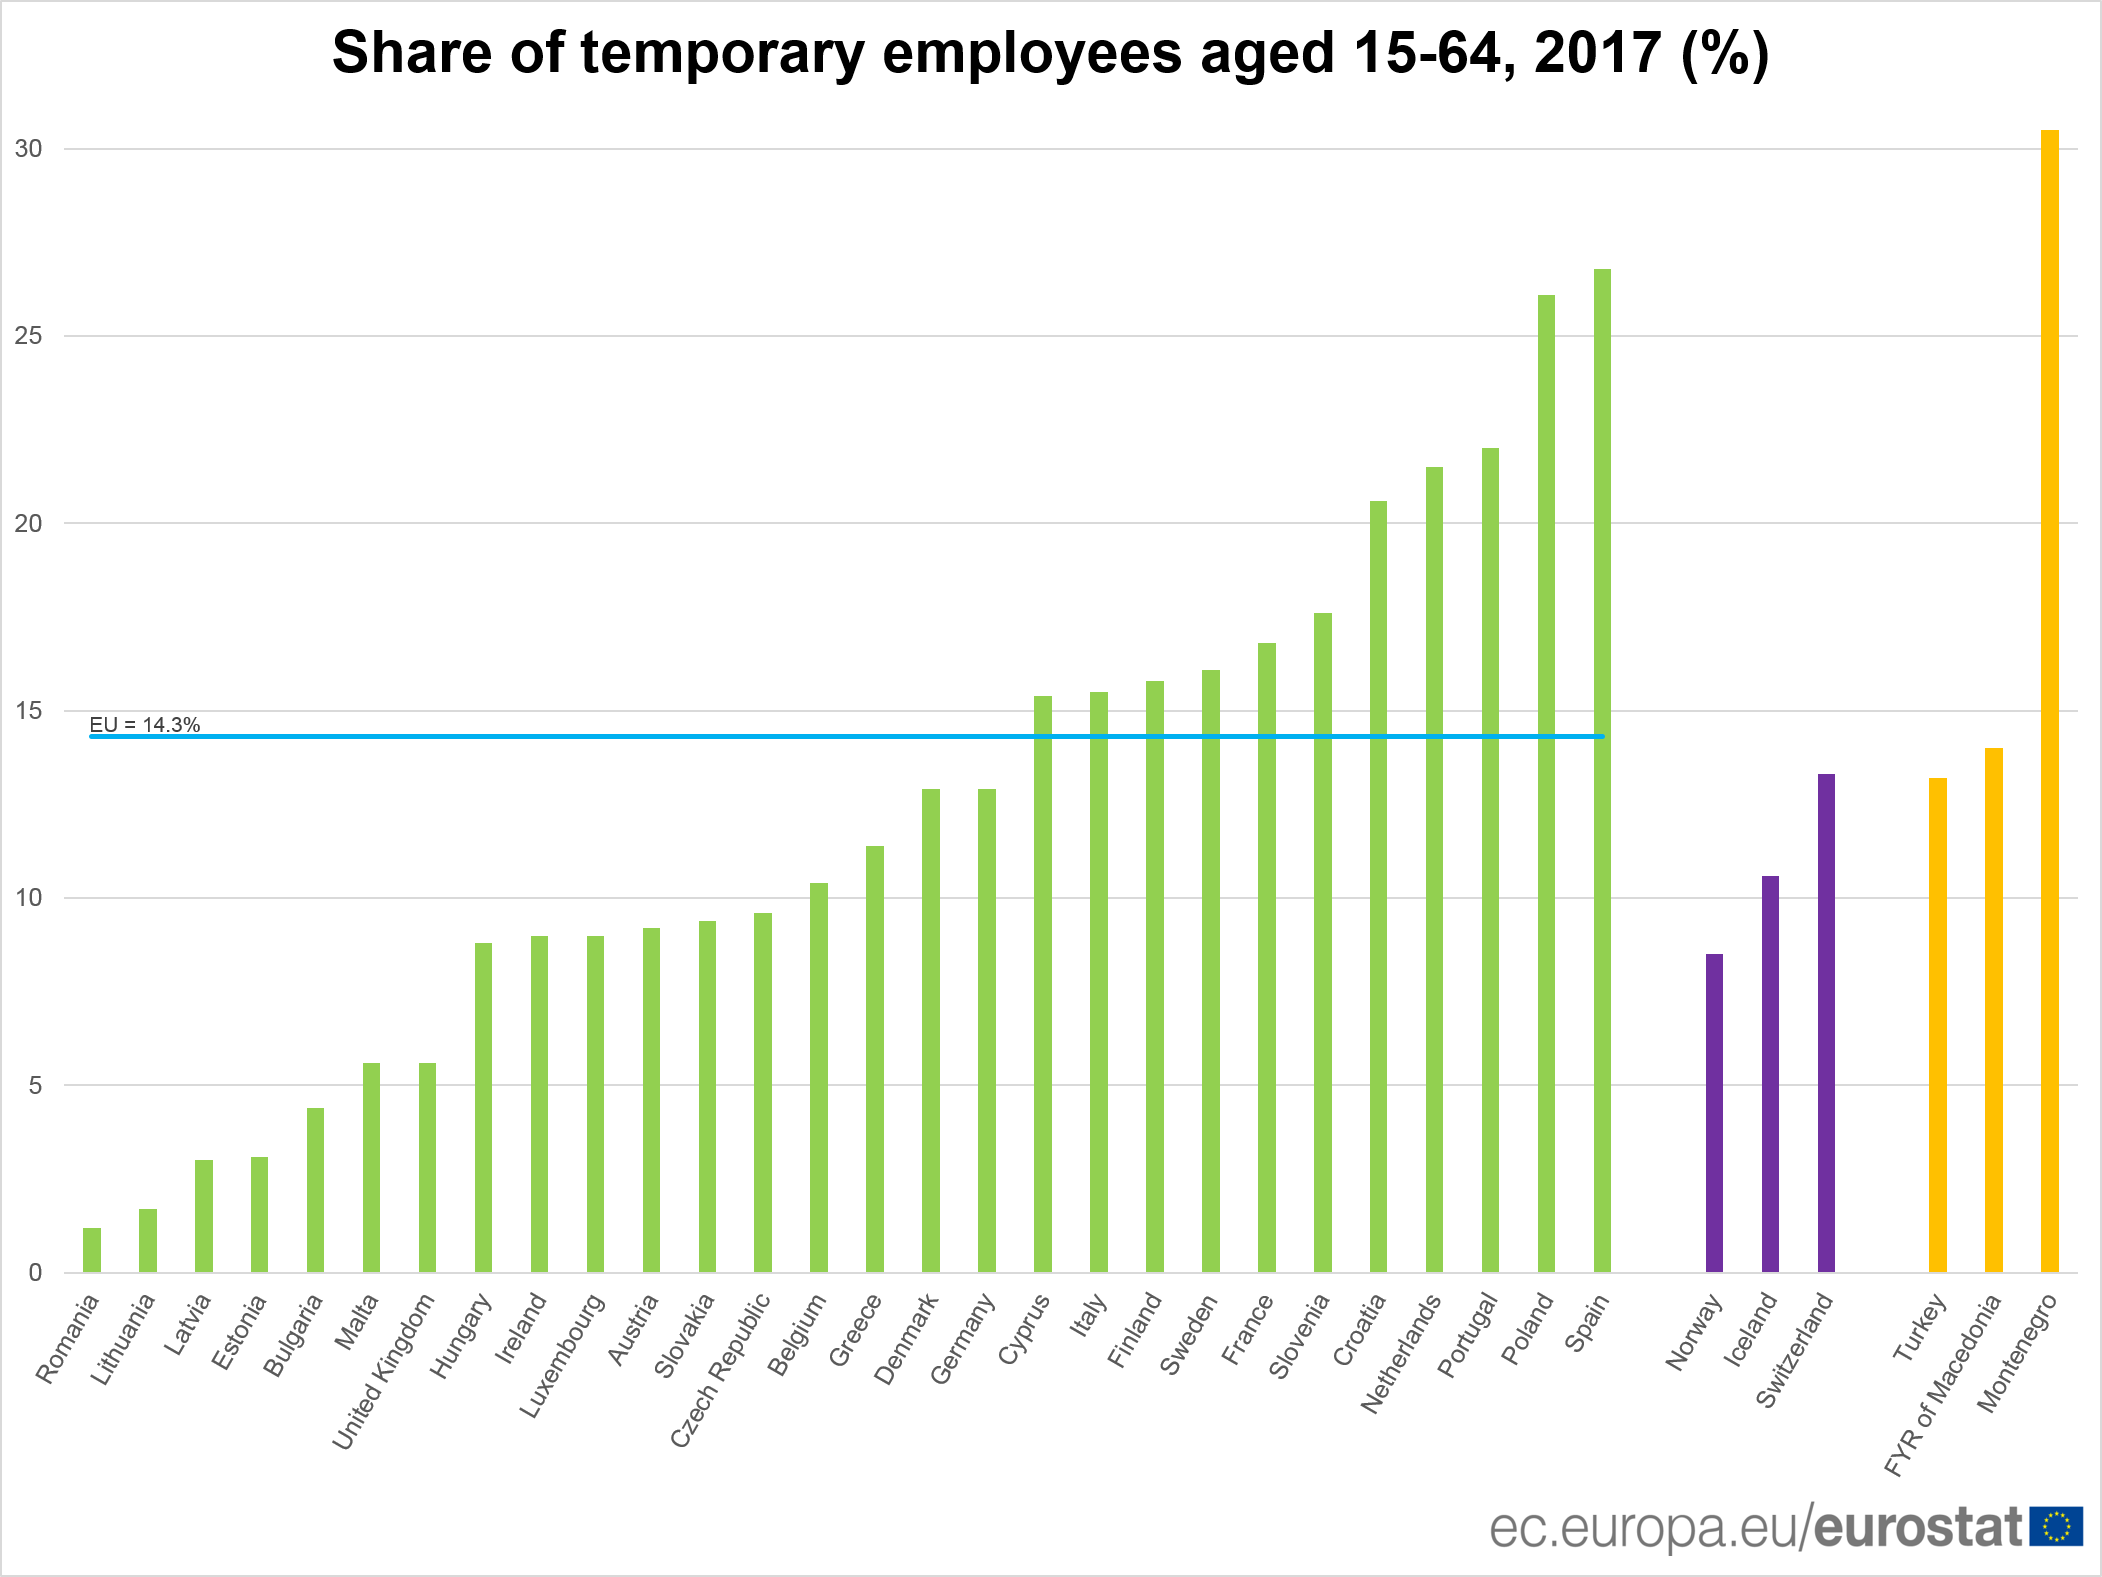 Share of temporary employees